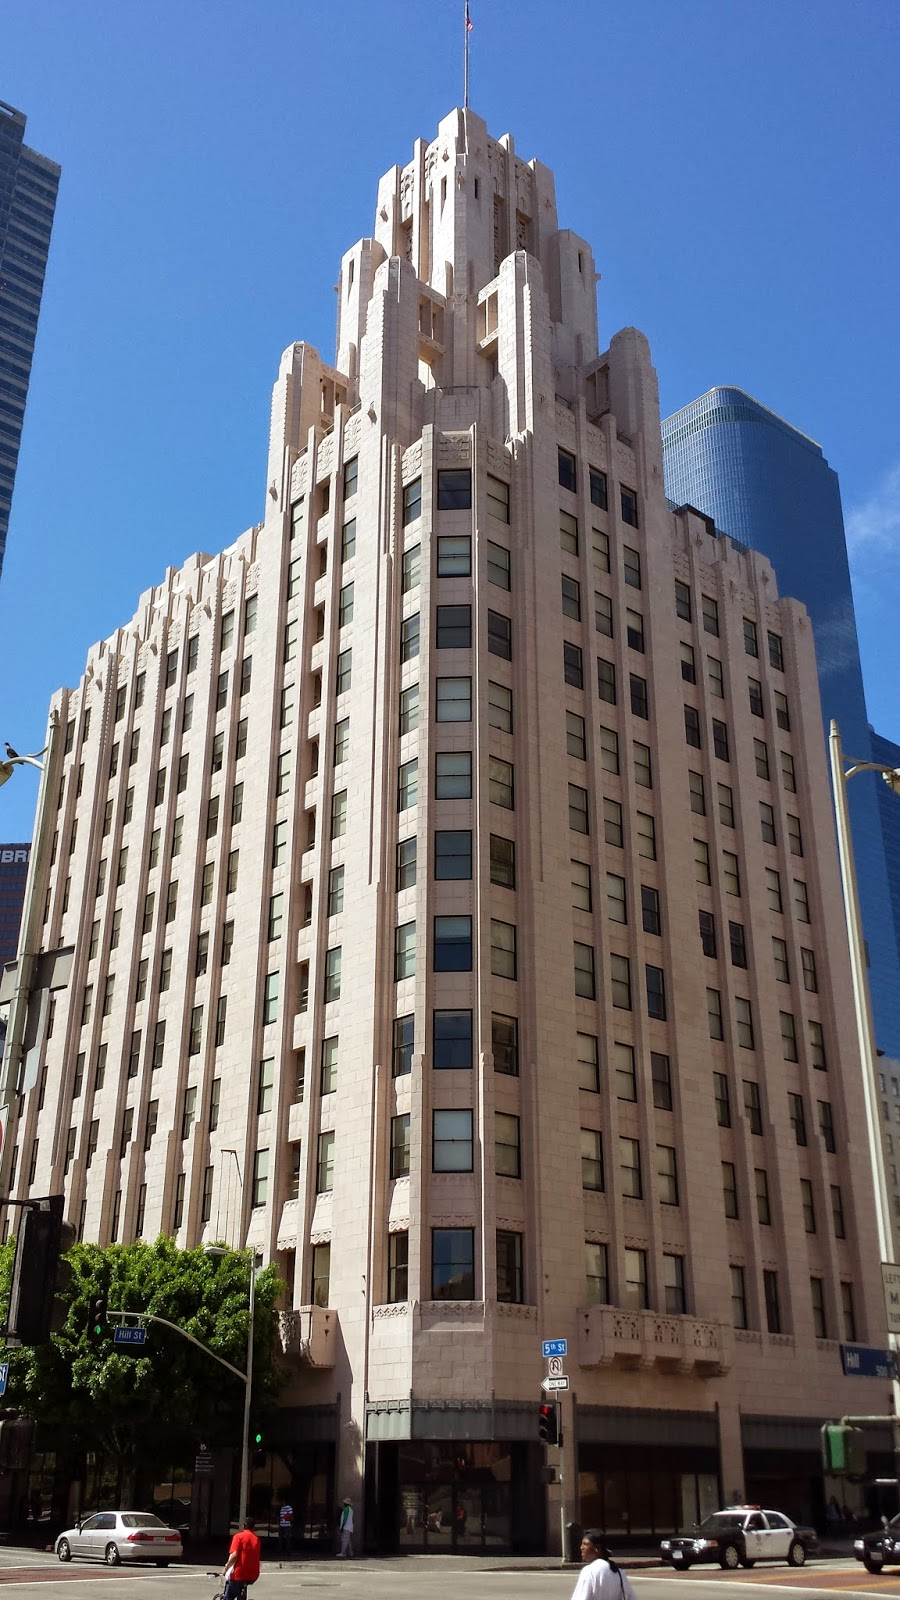 Historic Los Angeles Landmarks The Ultimate Guide